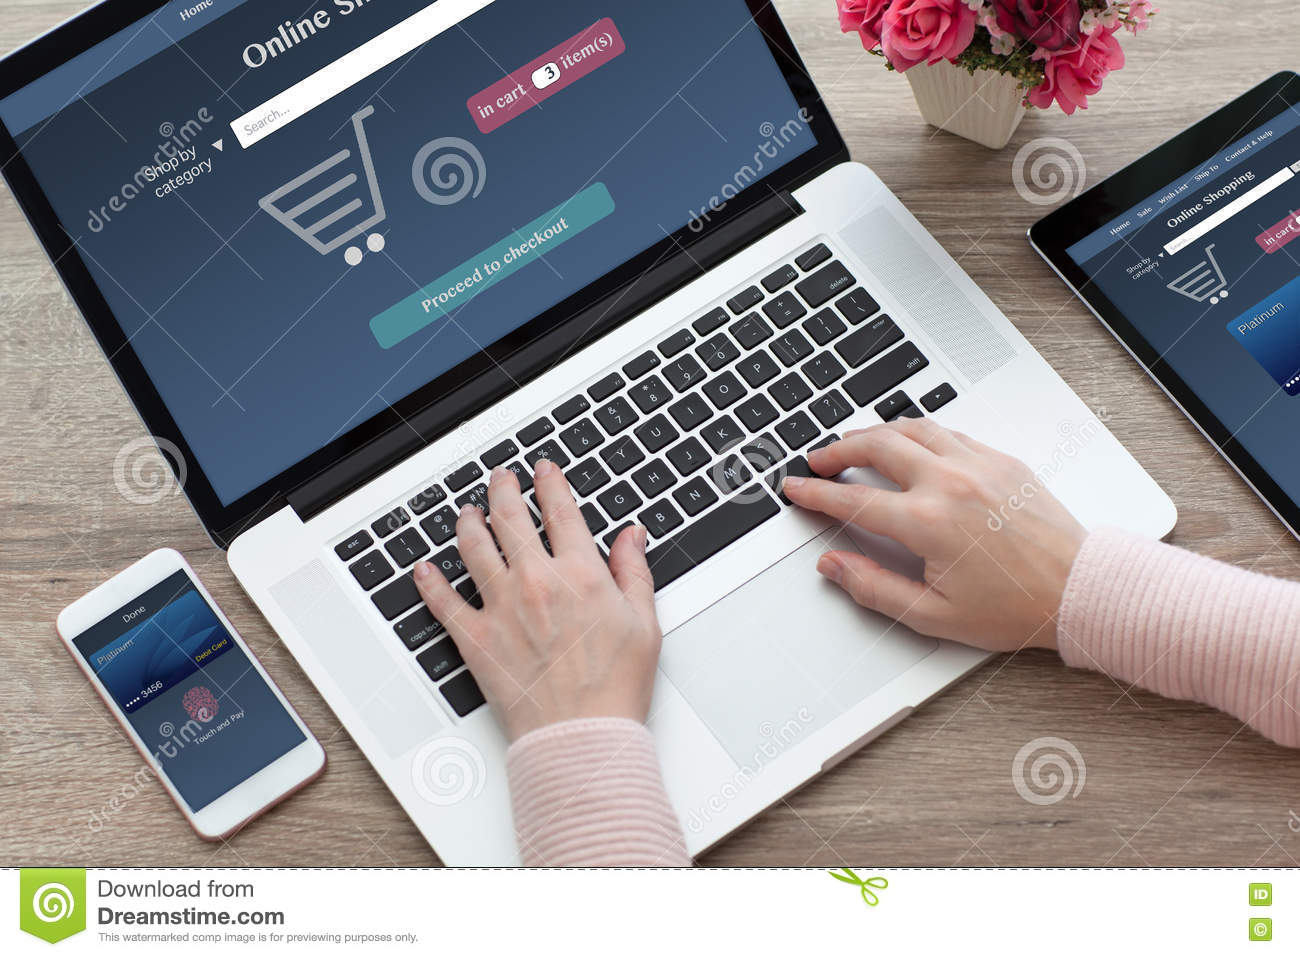 woman hands notebook and computer tablet phone online shopping stock image image of sensory. Black Bedroom Furniture Sets. Home Design Ideas